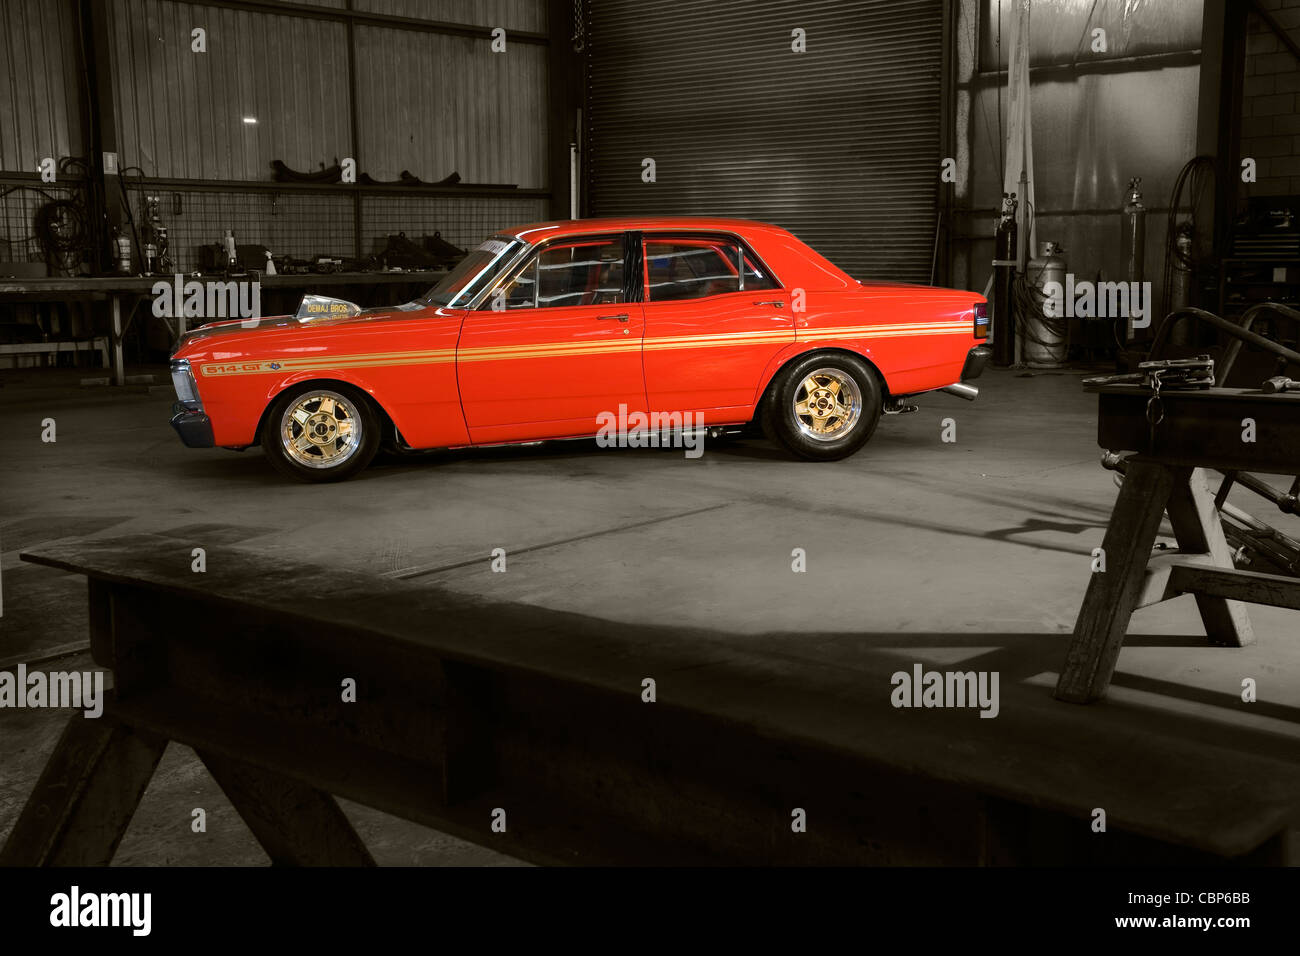 Fully Customised Classic Australian Ford Xy Gt Falcon Posed In A Factory Location And Then Photoshop Modified For Visual Impact